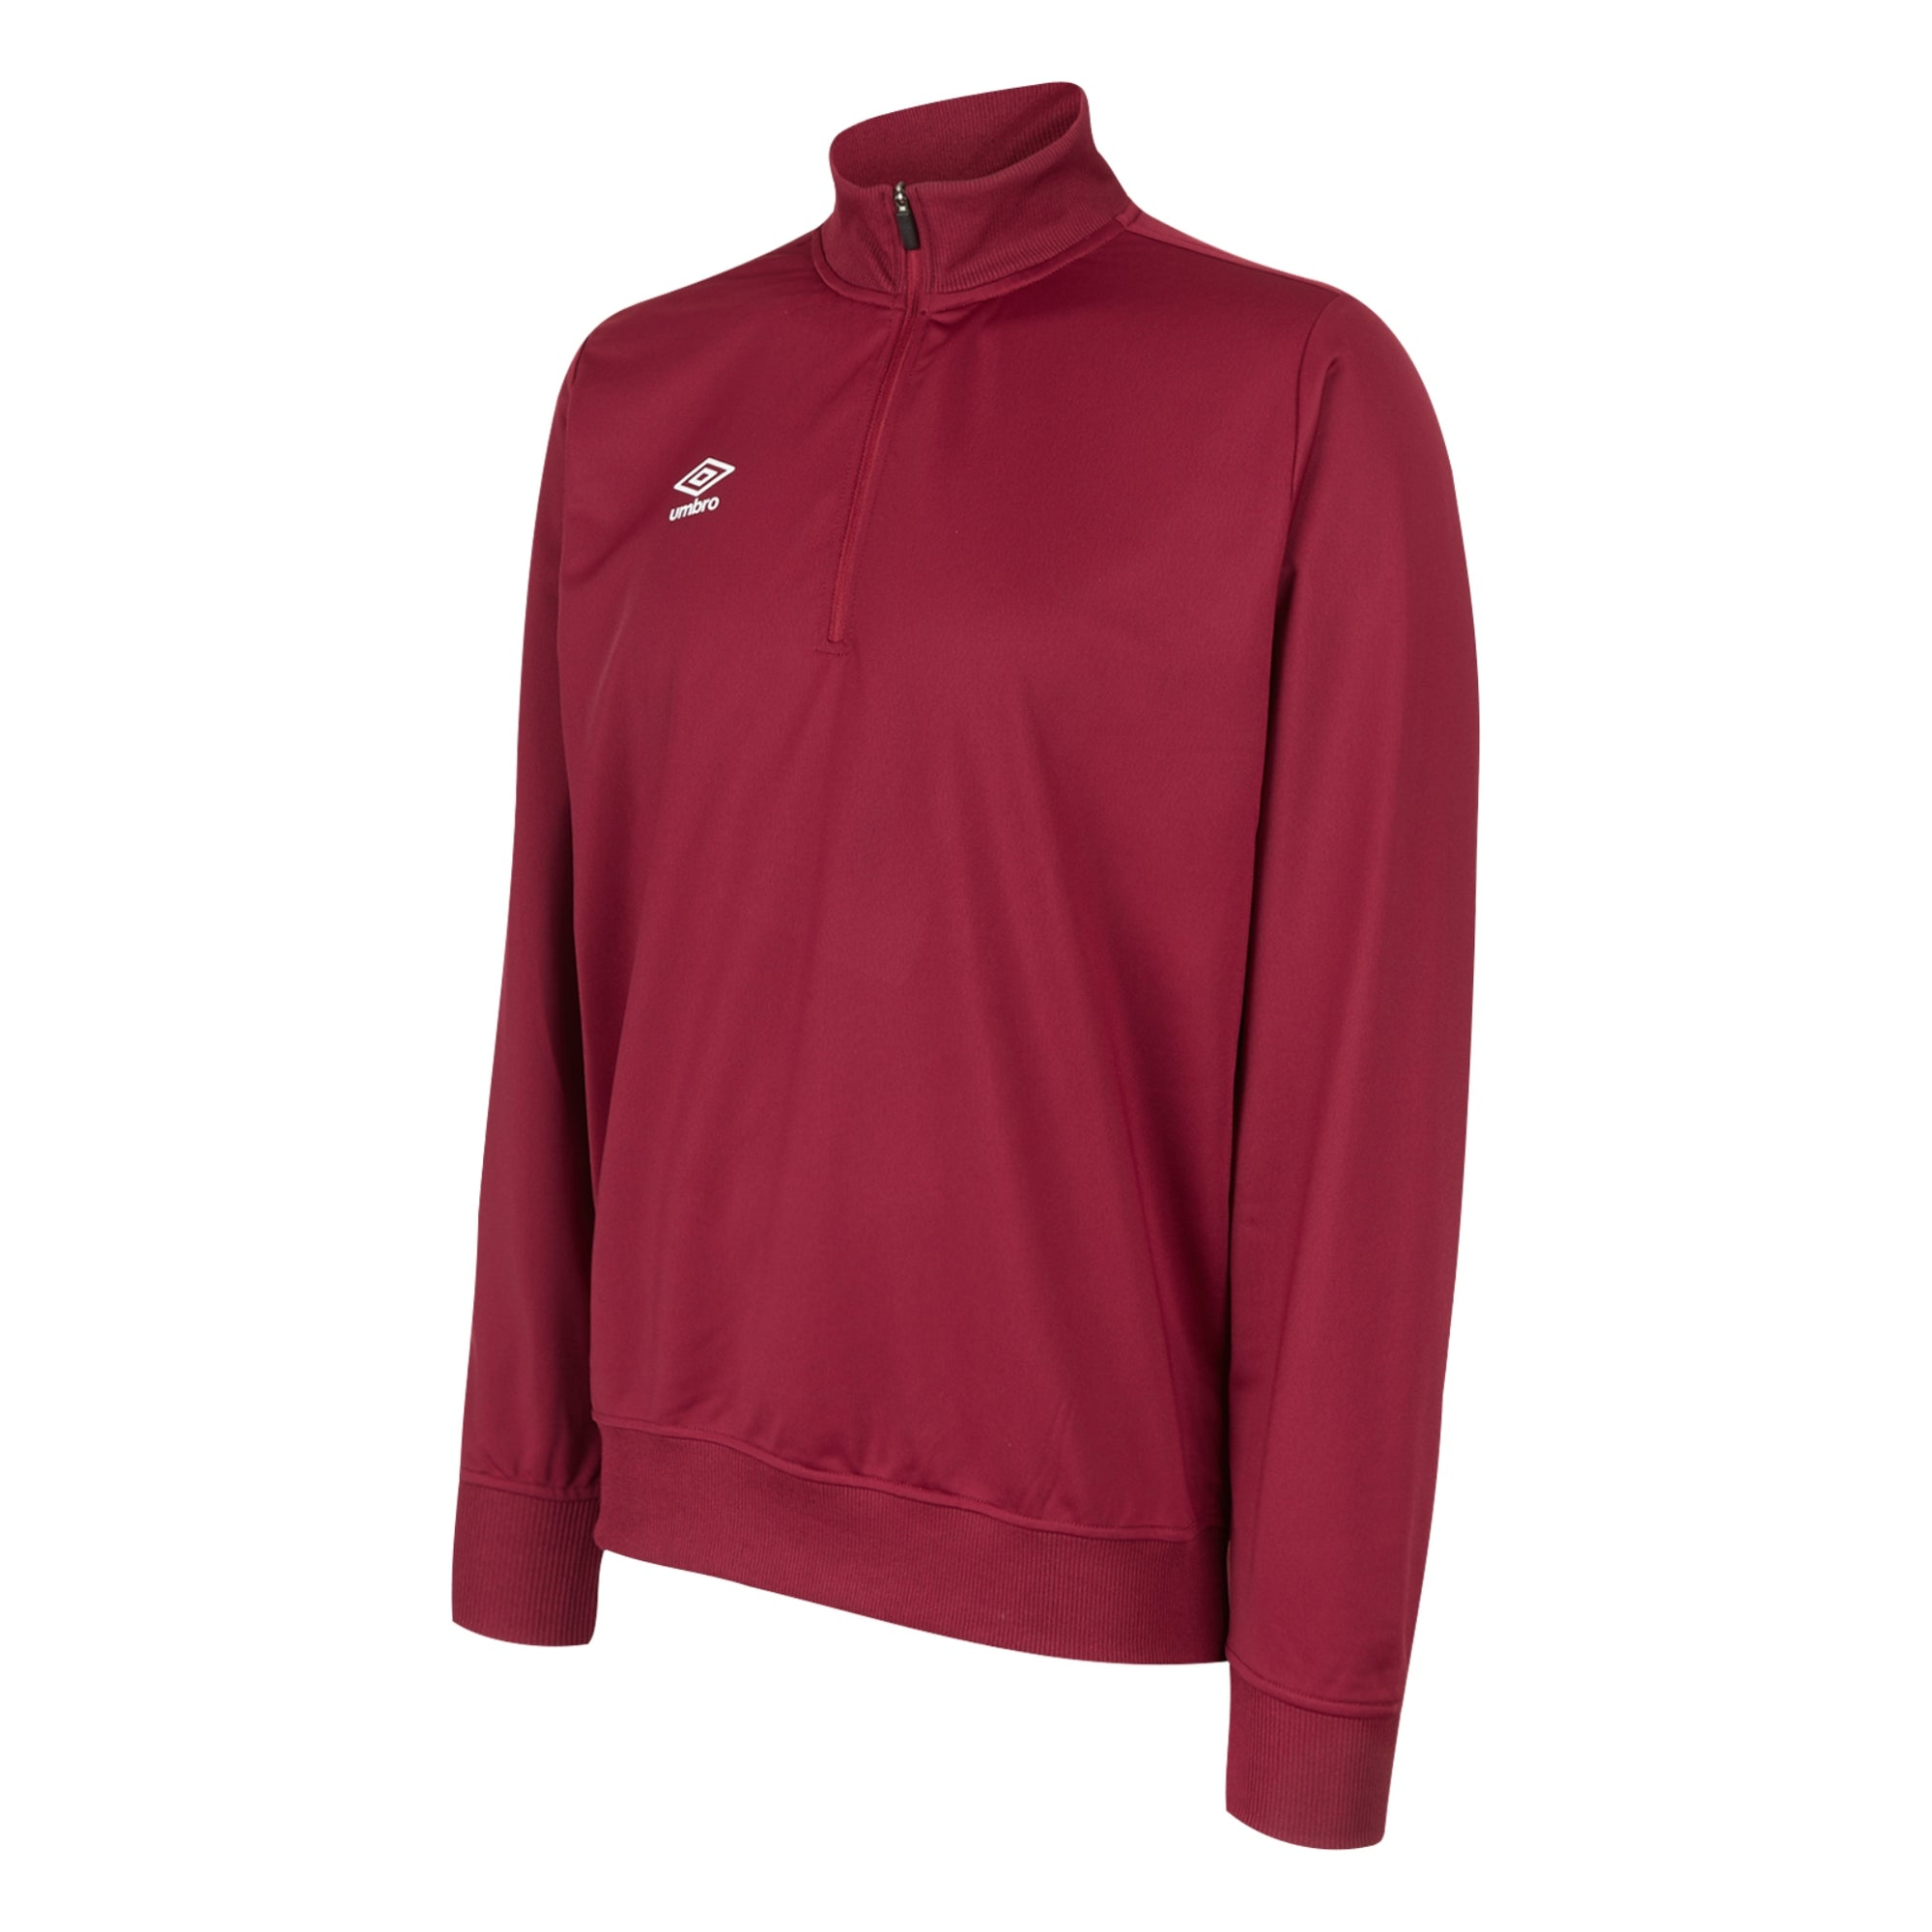 Umbro Club Essential Half Zip Sweat - New Claret